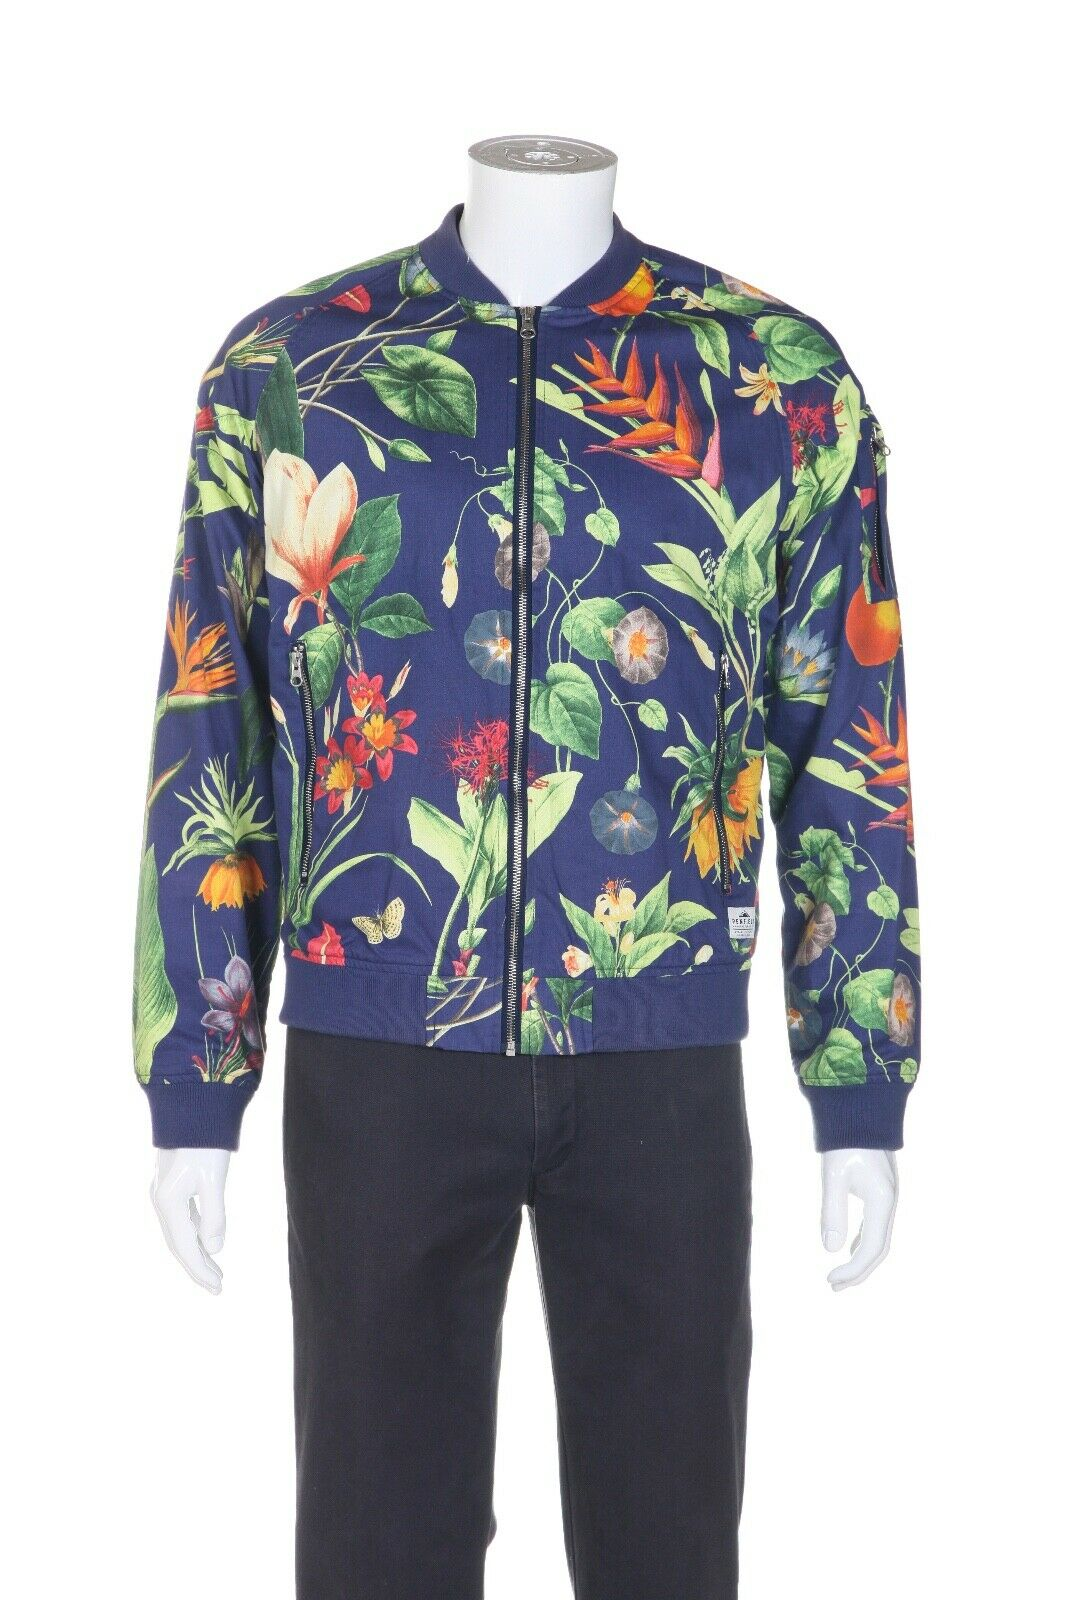 PENFIELD Floral Zip Up Bomber Jacket Size L